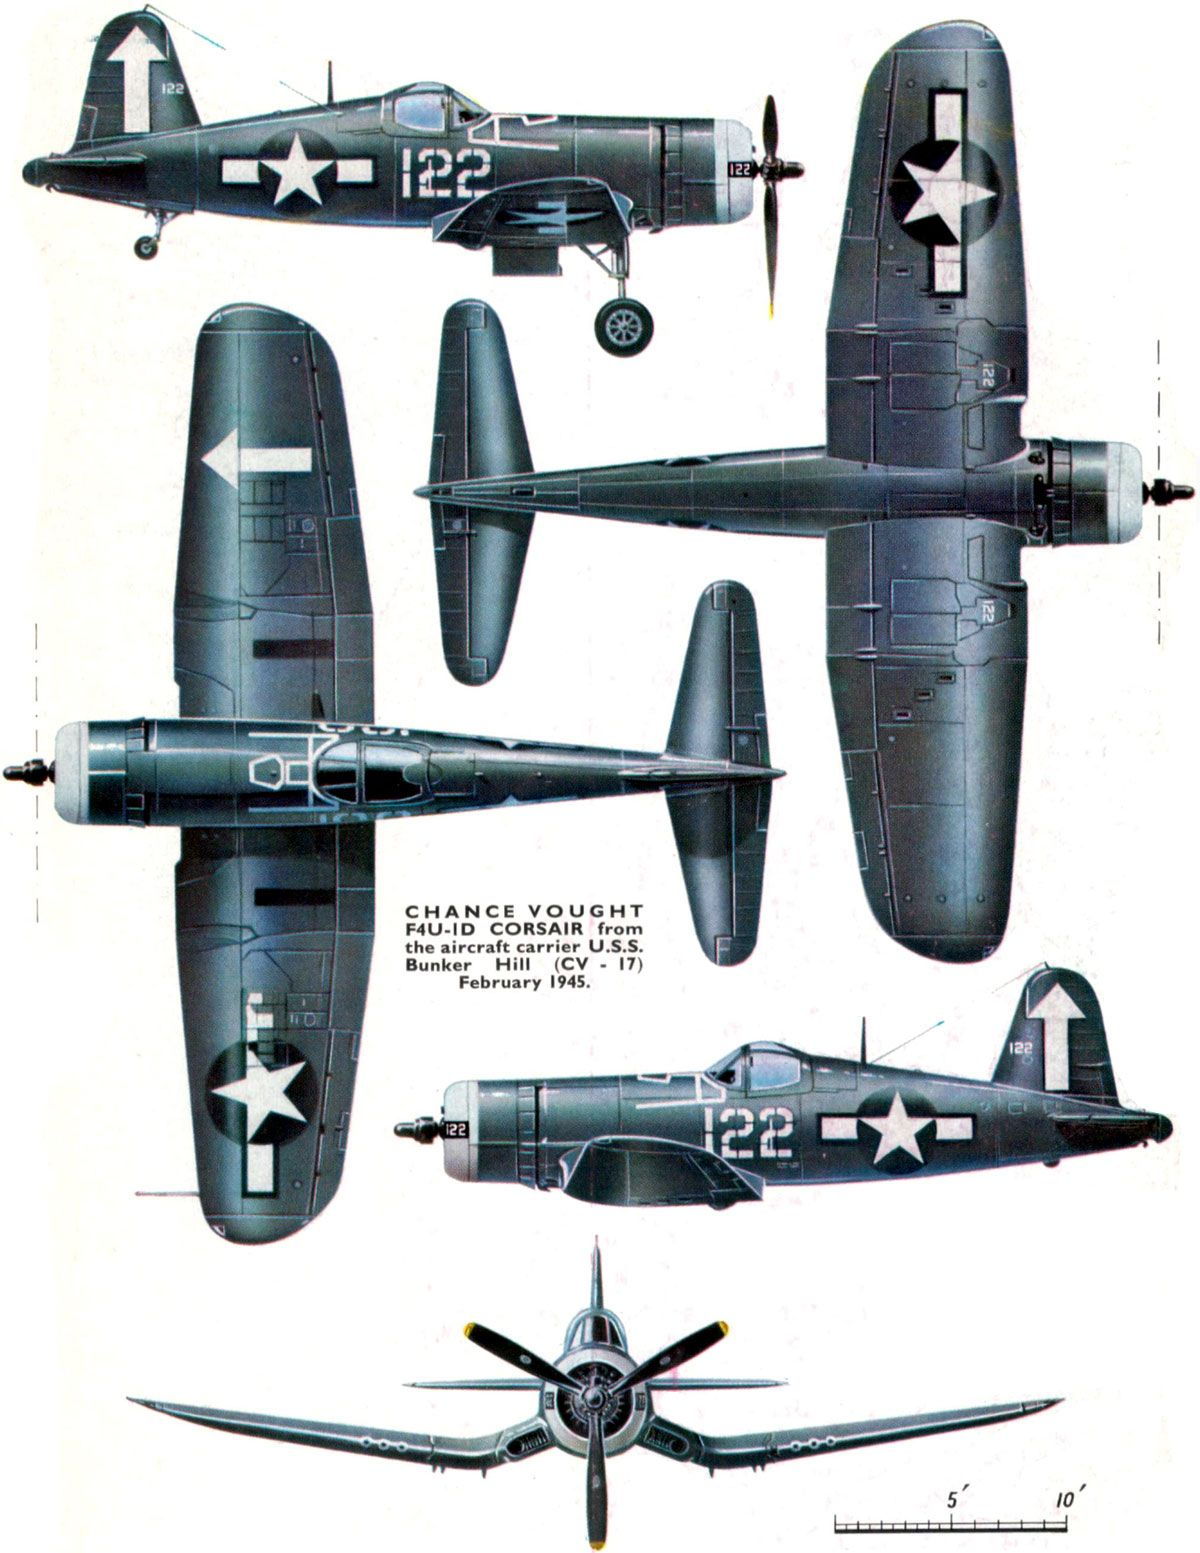 Chance Vought F4U-1D Corsair--I had one of these in a foam representation that you shot off a plastic aircraft carrier it was cool